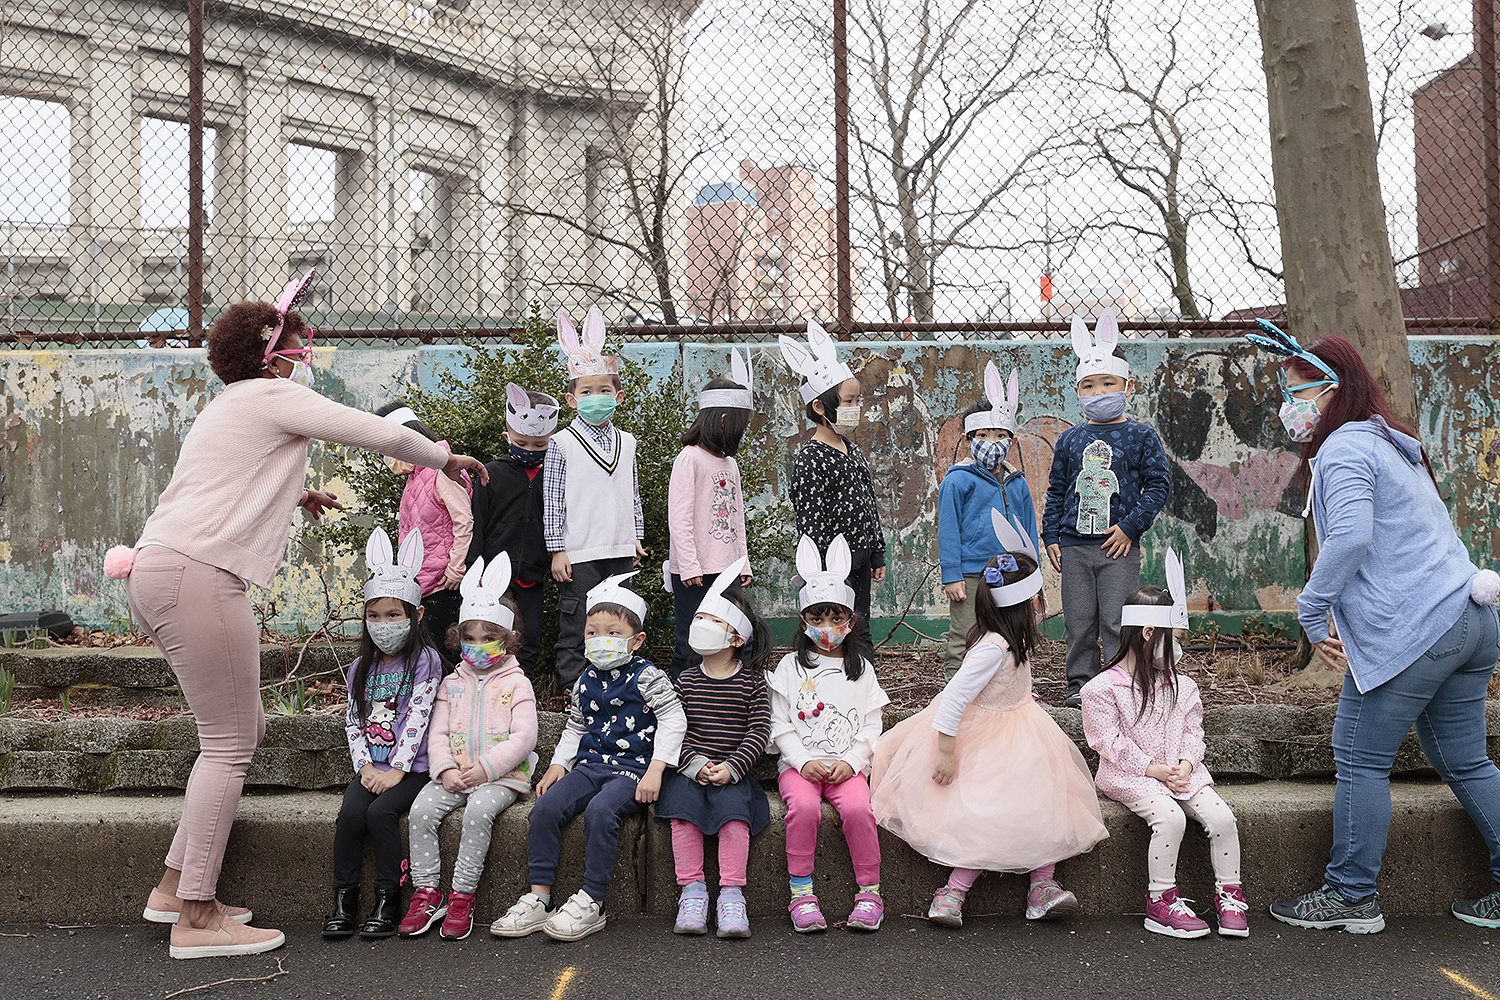 Teachers help organize kindergarten and prekindergarten students for a class portrait at Yung Wing Elementary School in New York City on March 25. Michael Loccisano/Getty Images